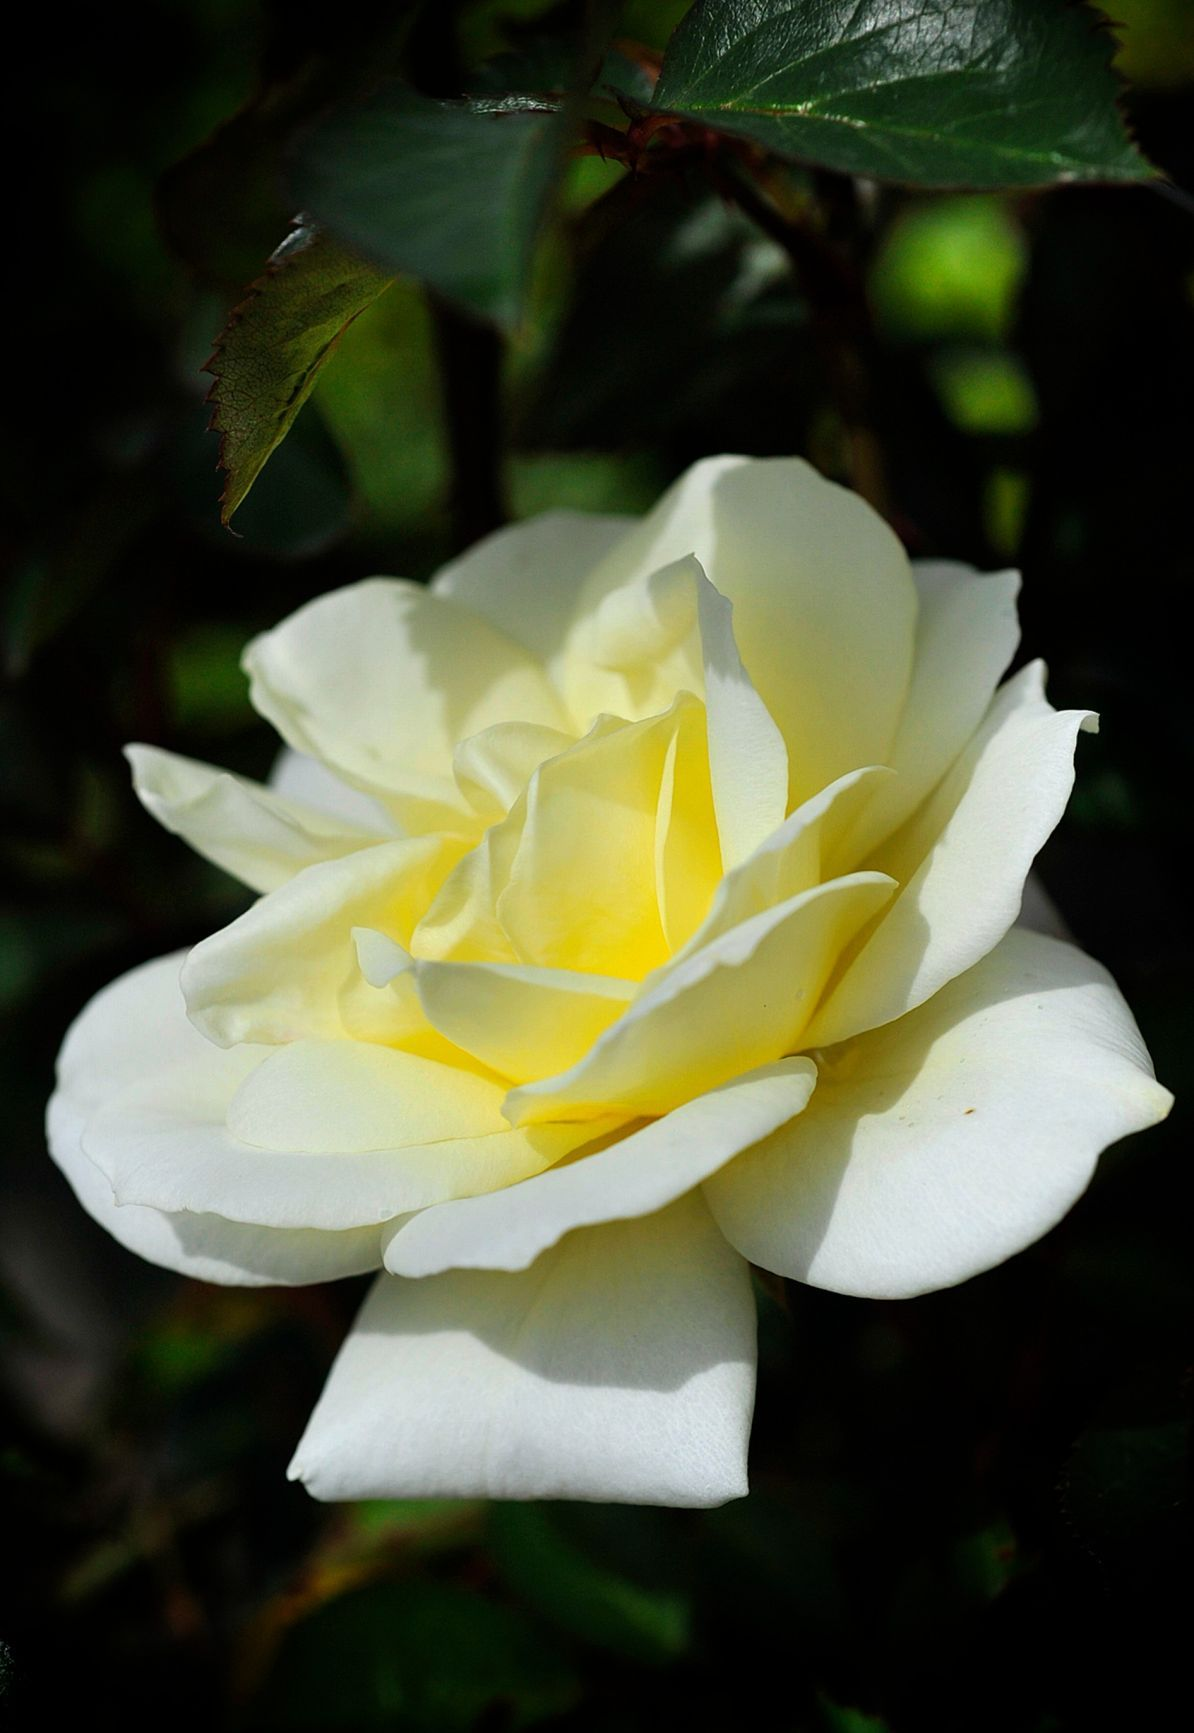 Beginners Blooms Experts Offer Advice On Growing Roses In A Home